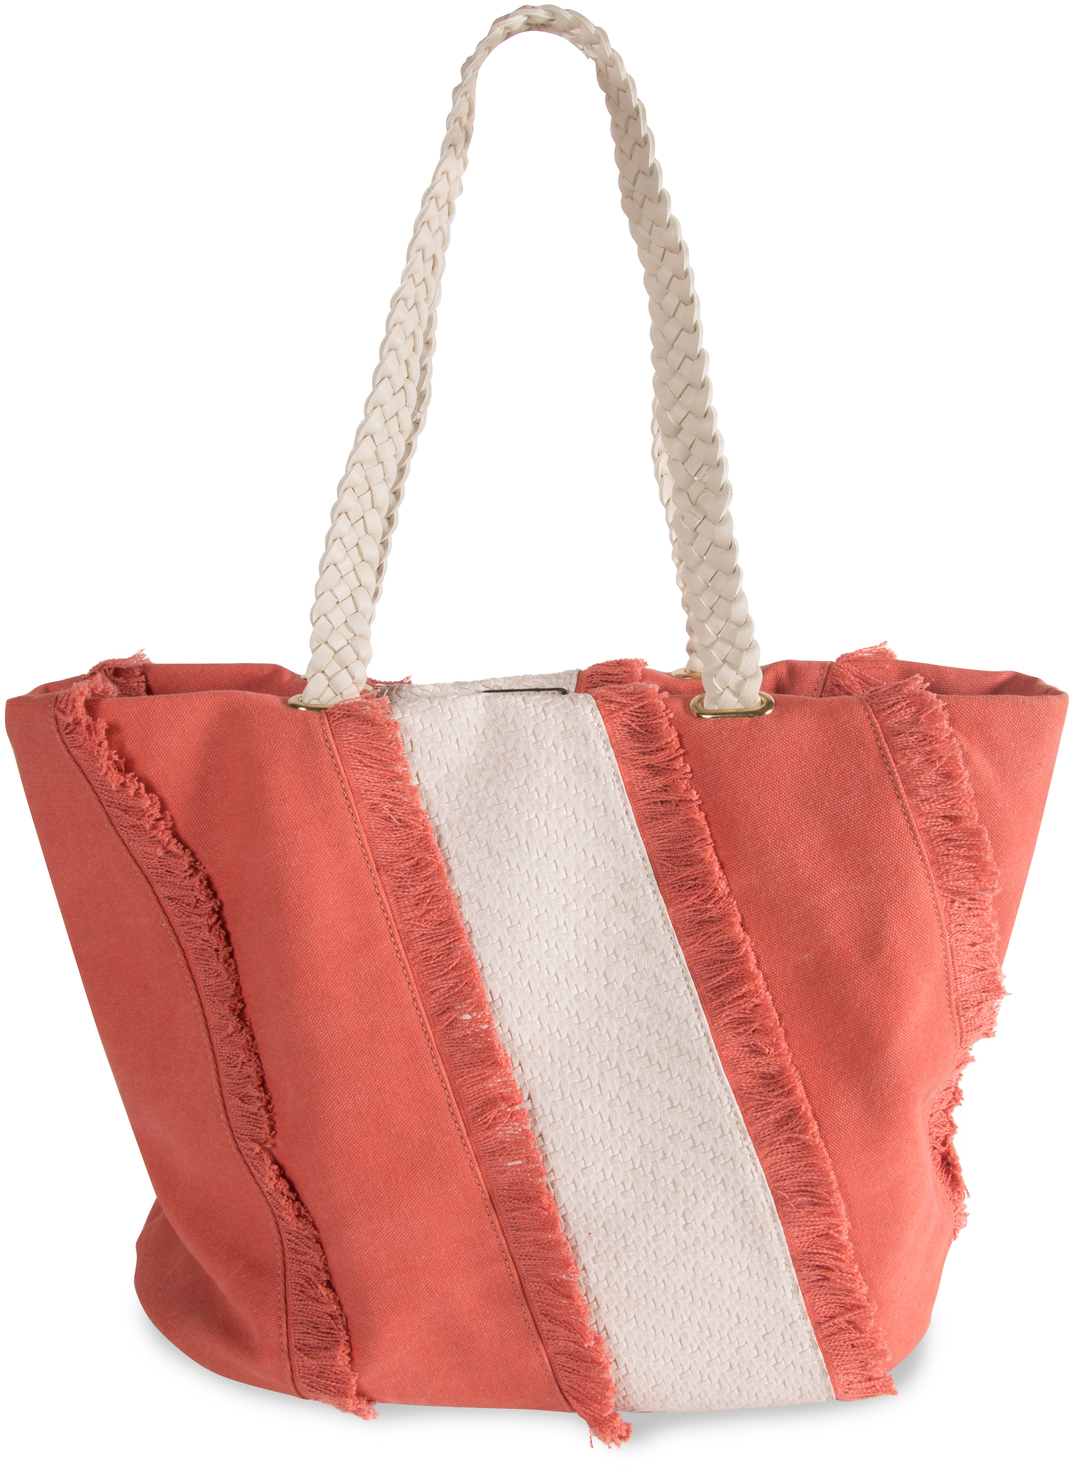 "Flush by H2Z Handbags - Flush - 19"" x 13"" Frayed Canvas Handbag"